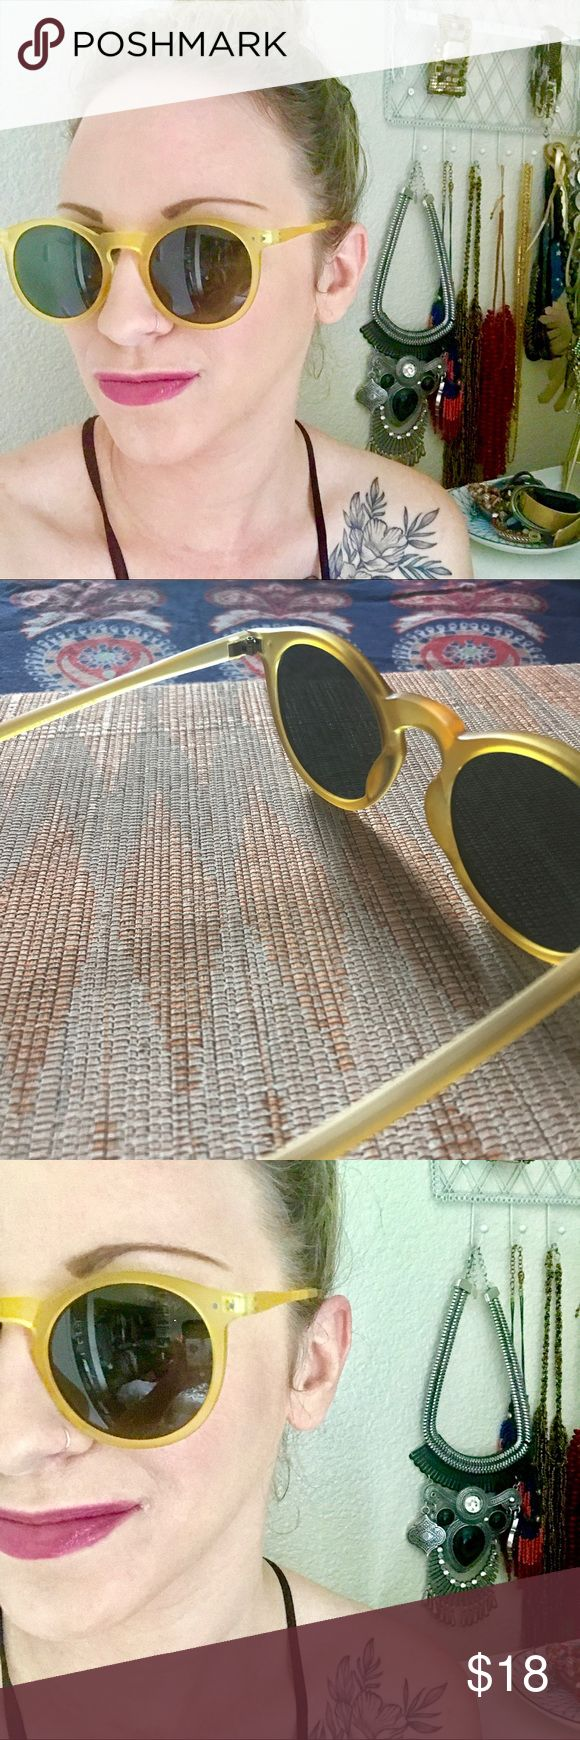 mustard / yellow brand new fun fashion sunglasses adorable sunglasses in perfect condition golden yellow / mustard plastic that's slightly see-through / opaque perfect, never-used condition (no tags) slight cat-eye at edges black / grey circular lenses Accessories Sunglasses